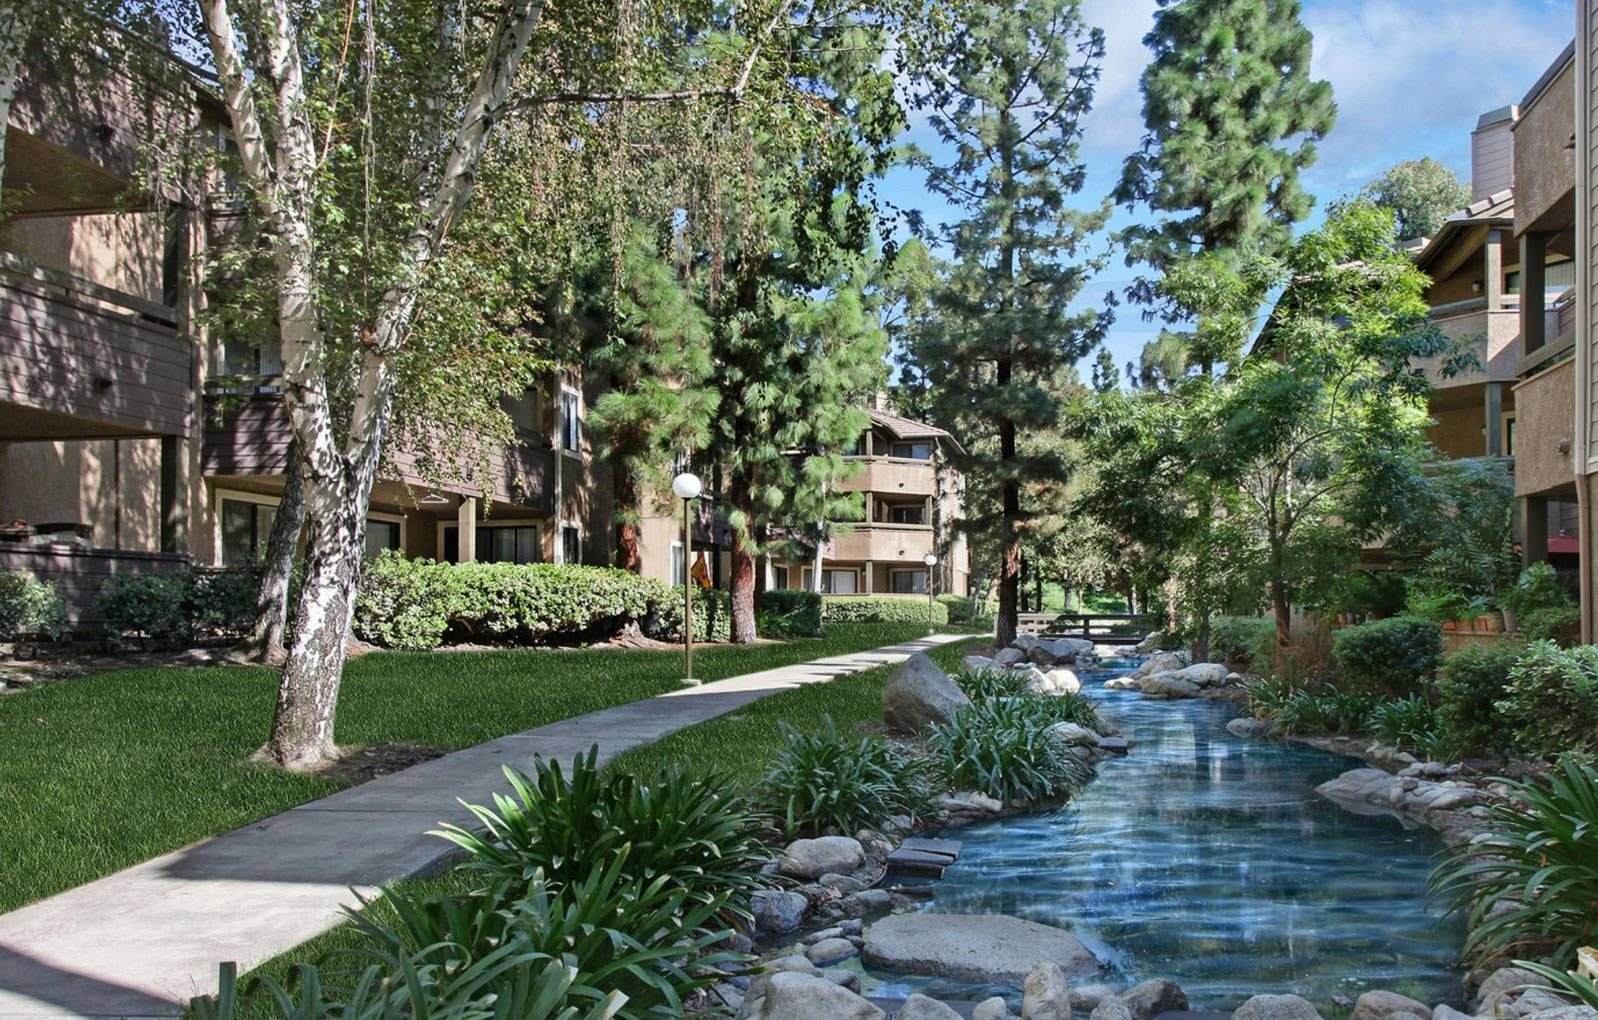 Creek l Creekside Apartments in Rancho Cucamonga CA l Creekside Alta Loma